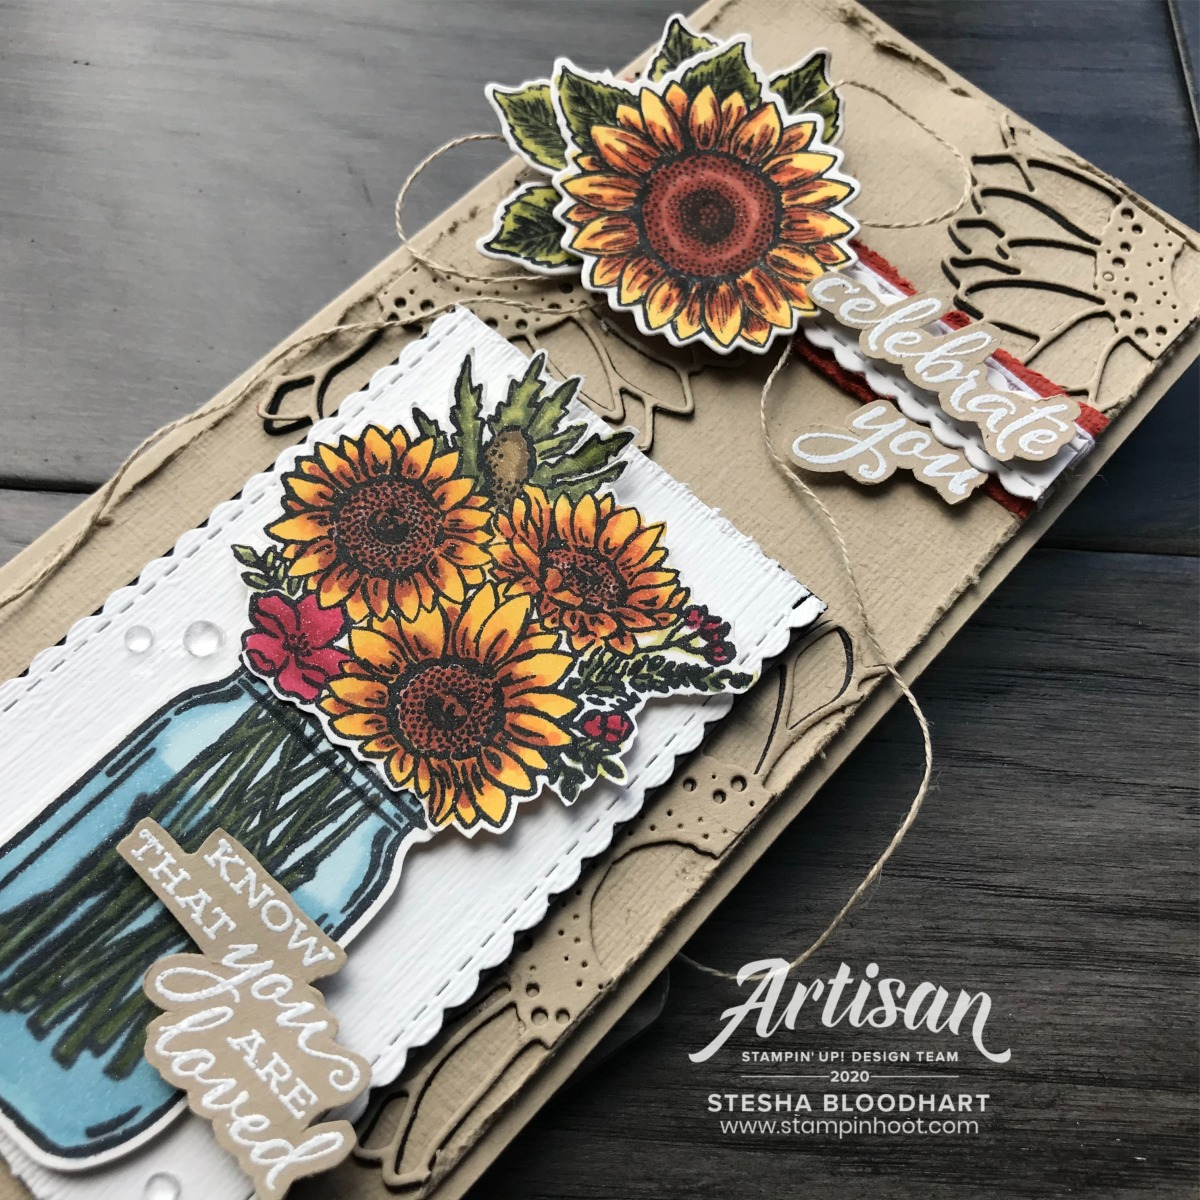 Dear Doily and Well Said Bundles by Stampin' Up! 2019 Artisan Design Team Created by member Stesha Bloodhart Stampin' Hoot!